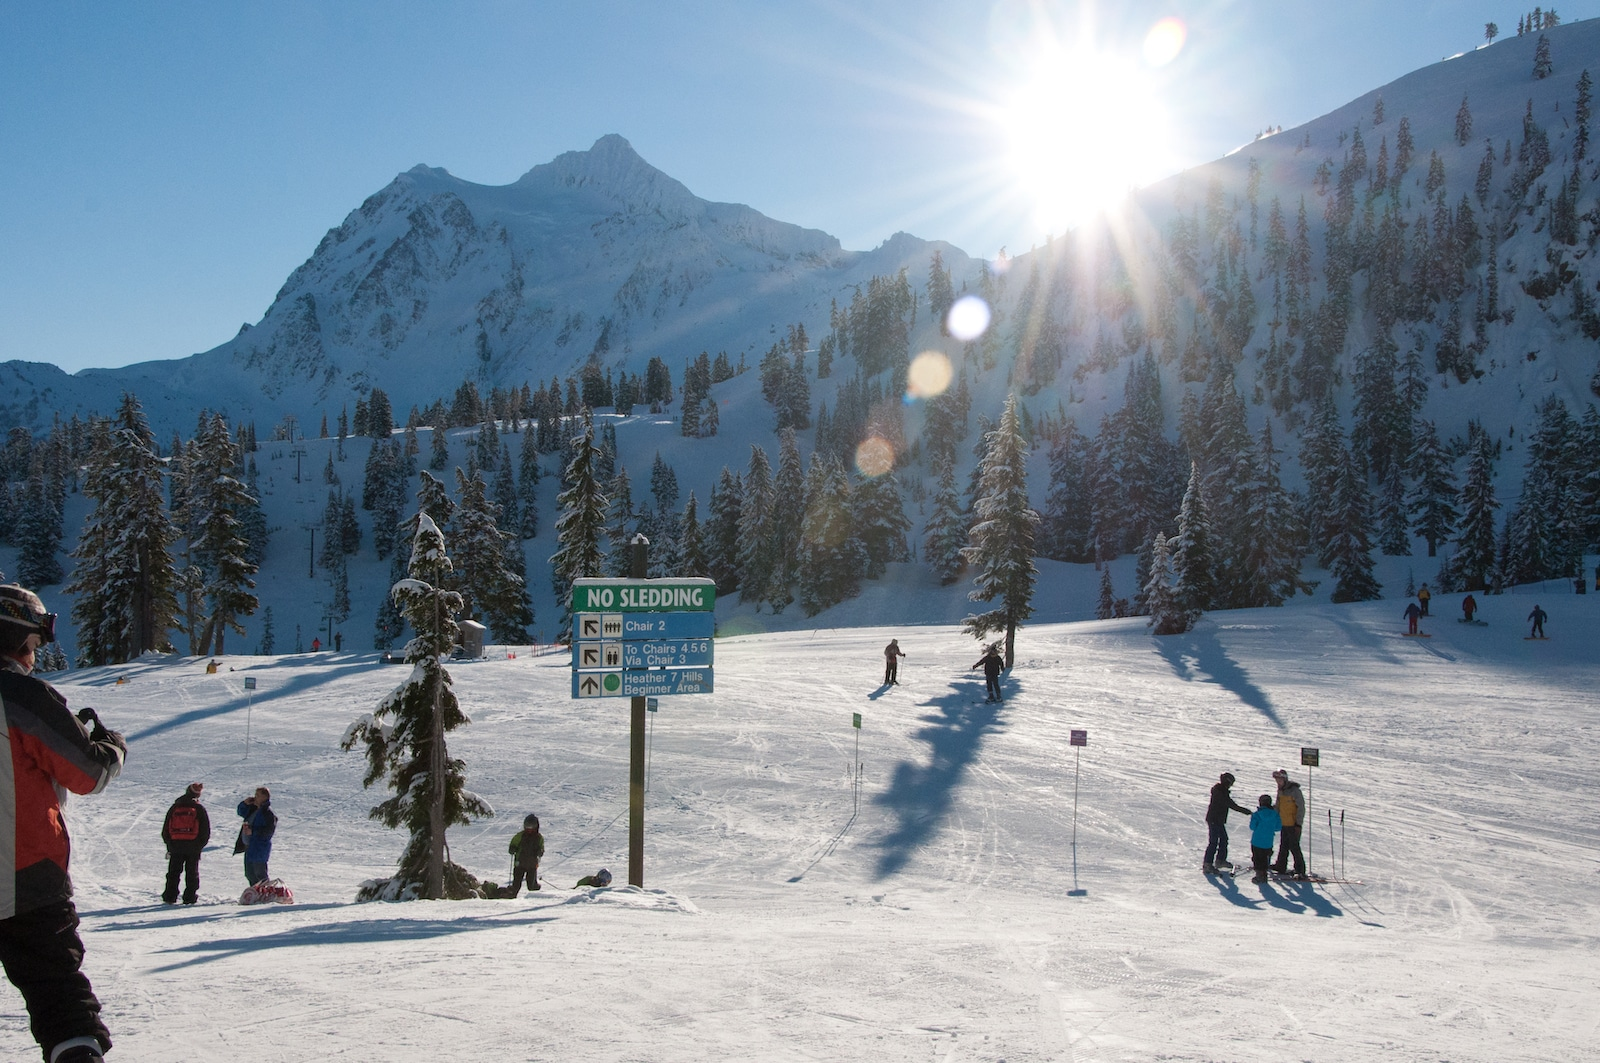 Image of sunny skies and snow covered mountains at Mount Baker Ski Area in Washington